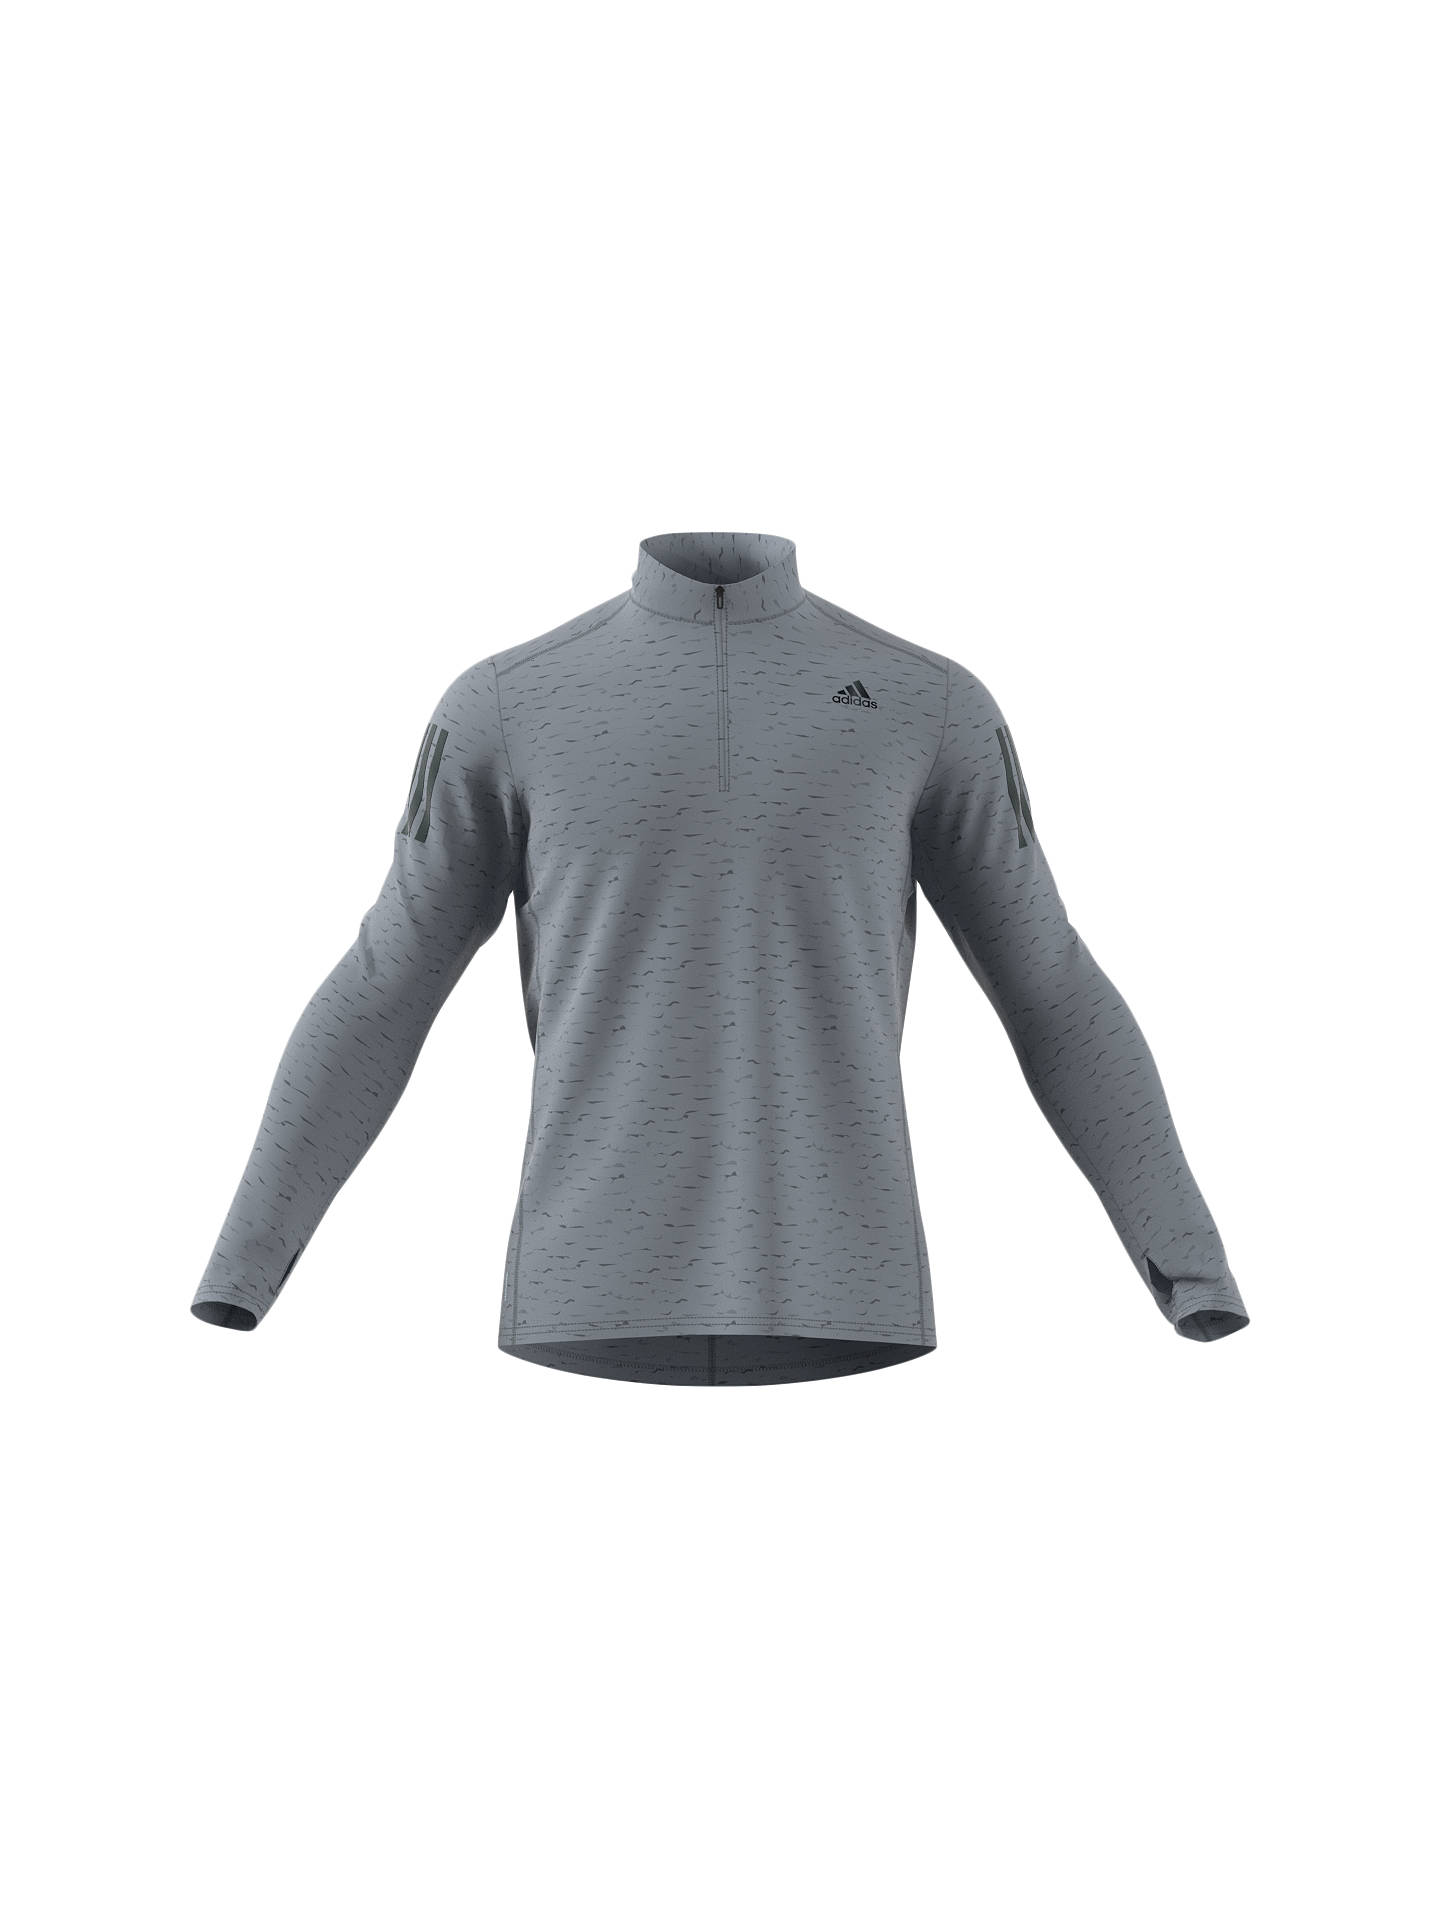 adidas Response Mens Running Top Grey Half-Zip Long Sleeve Jersey